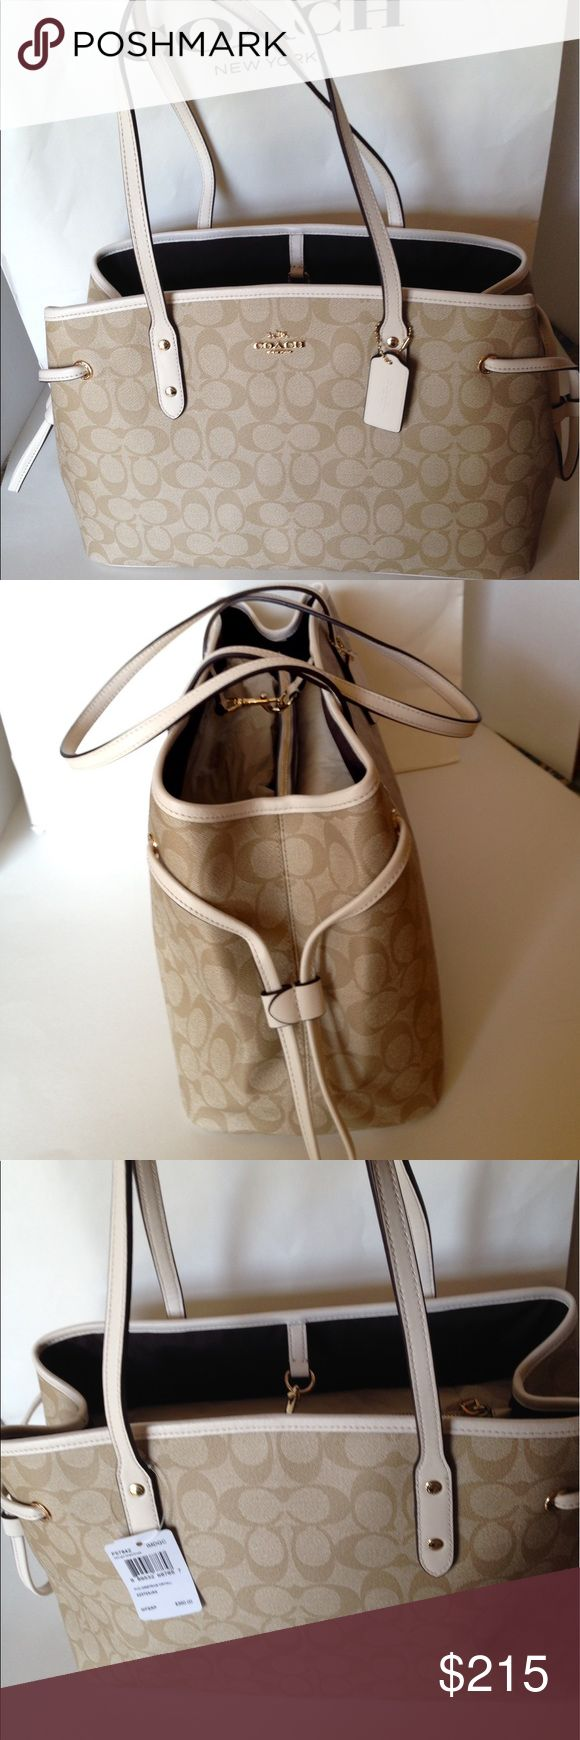 """NWT Coach Drawstring Carryall Bag Beautiful!! New with tags. Coach Signature PVC drawstring Carryall shoulder bag/Light khaki/chalk. Gold hardware trimmed in chalk leather. Handles with 9"""" drop. Two main compartments divided by zippered pocket. Lining chocolate twill with zippered pocket and two slip pockets. Dog leash closure. Great for Mother's Day or any day! F57843. No Trades Coach Bags Shoulder Bags"""